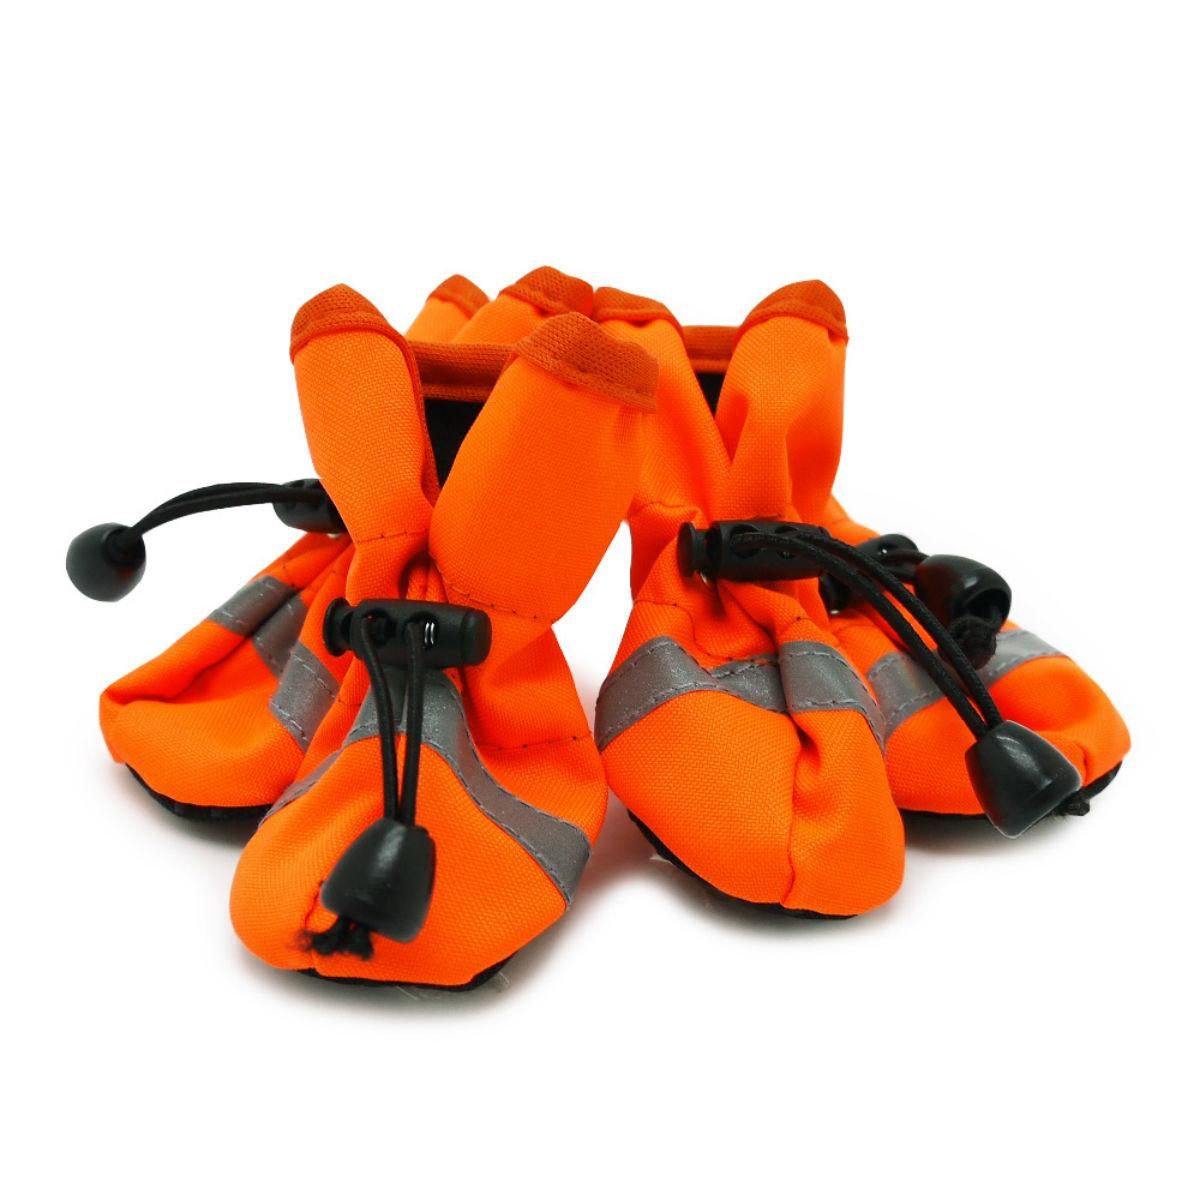 Slip-On Paws V Dog Booties by Dogo - Solid Orange